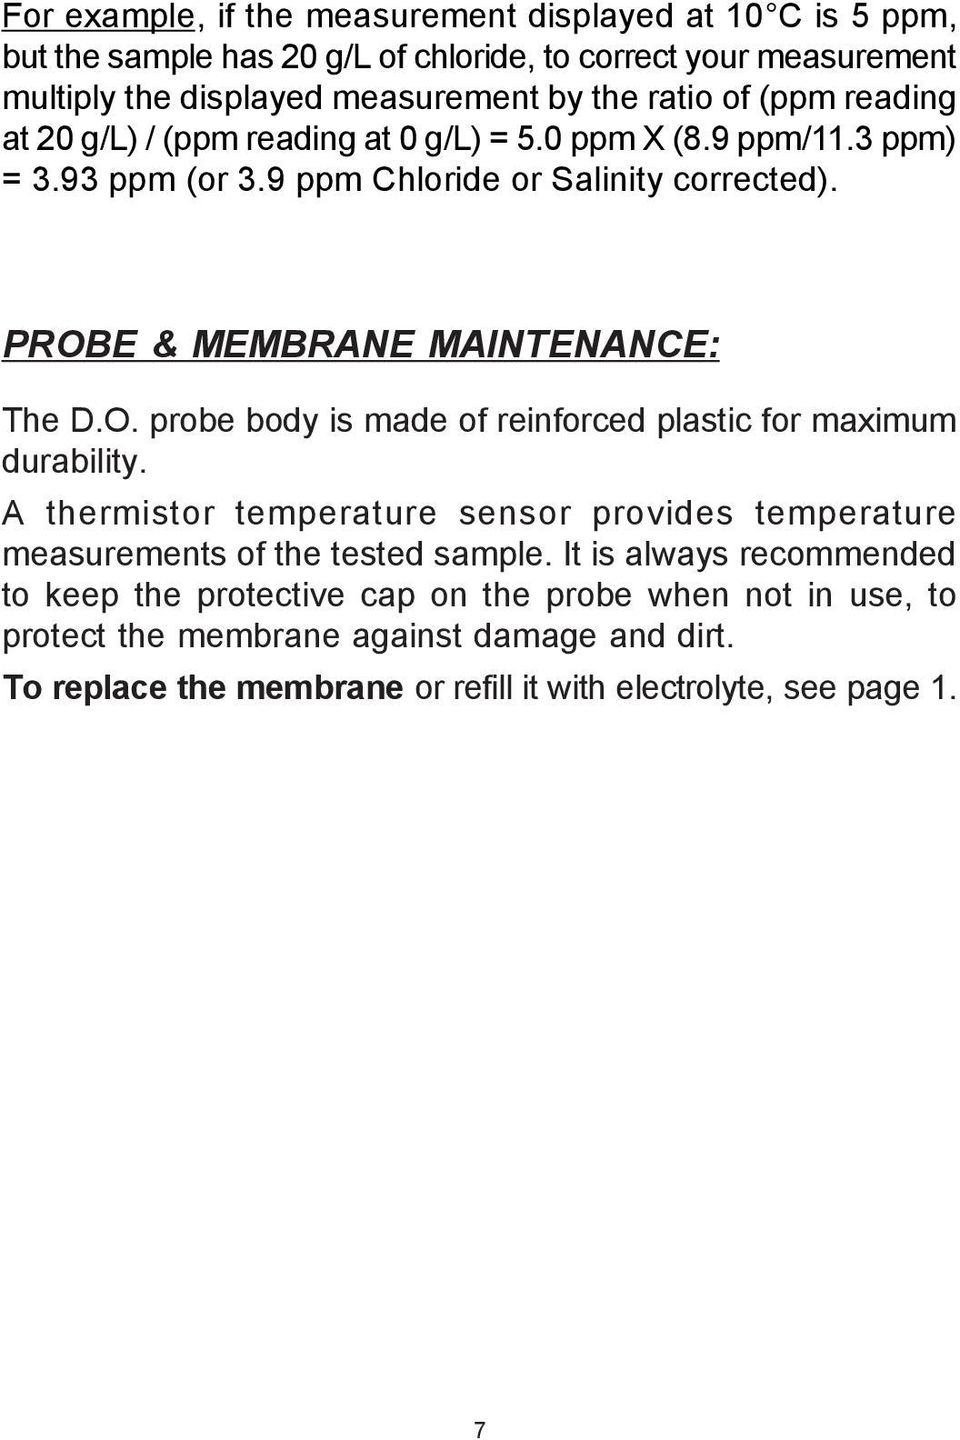 E & MEMBRANE MAINTENANCE: The D.O. probe body is made of reinforced plastic for maximum durability.